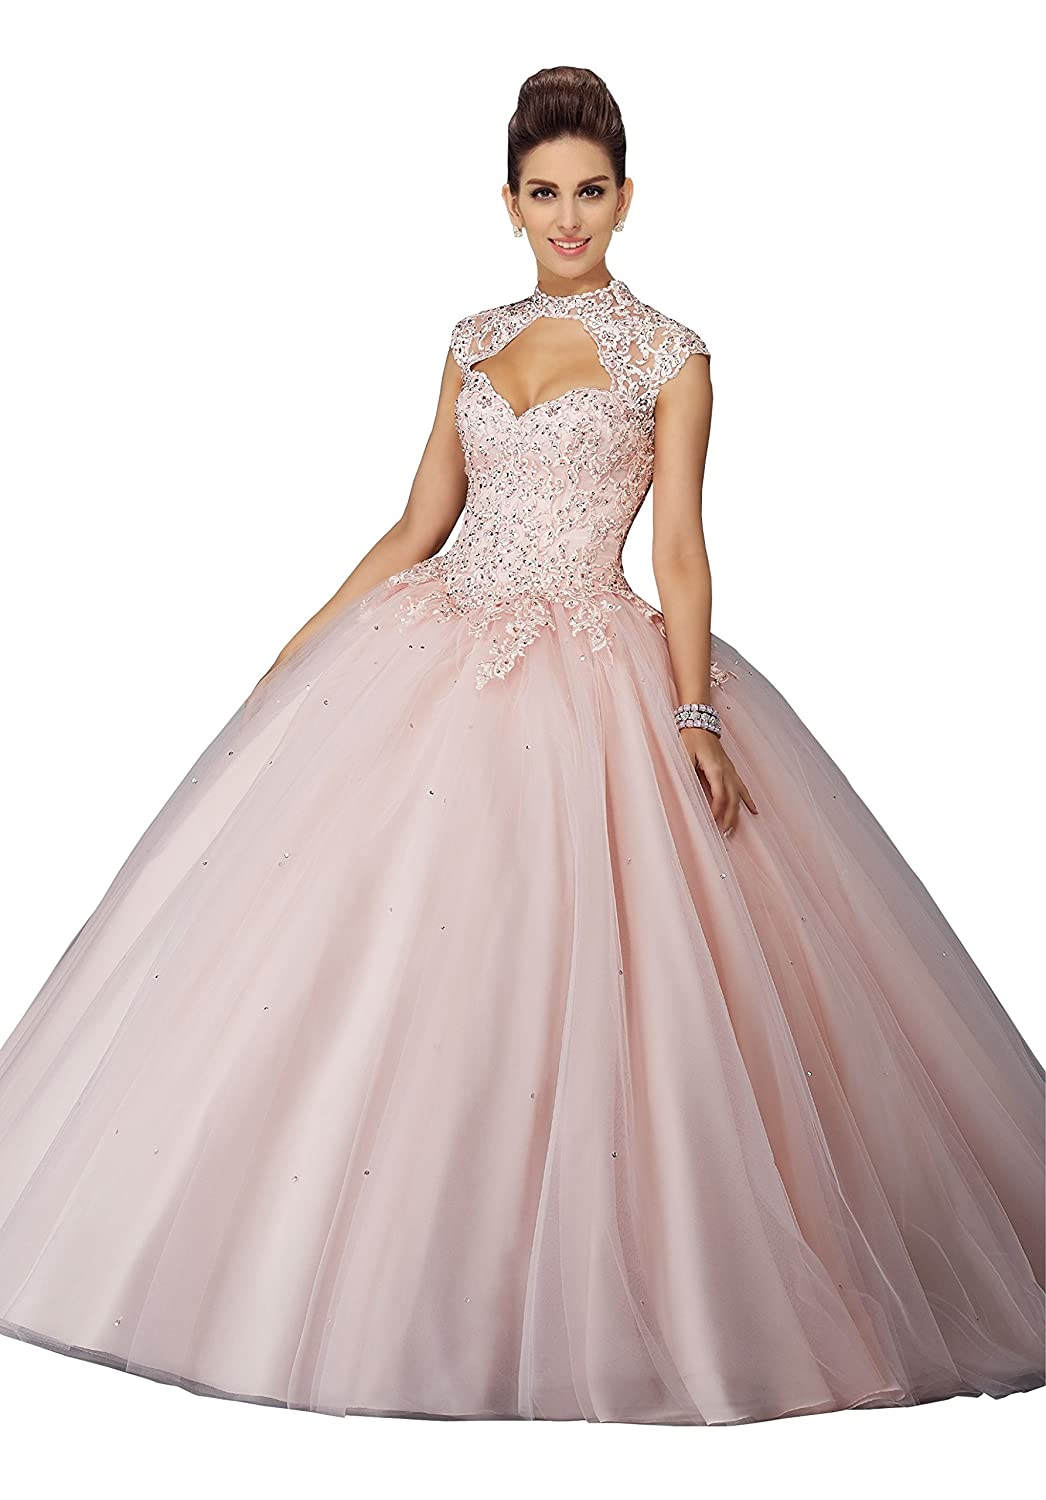 b8235569231 Fannydress High Neck Graduation Dresses High School 2019 Short Sleeve Lace  Applique Beaded Sequin Ball Gown Quinceanera Dress at Amazon Women s  Clothing ...